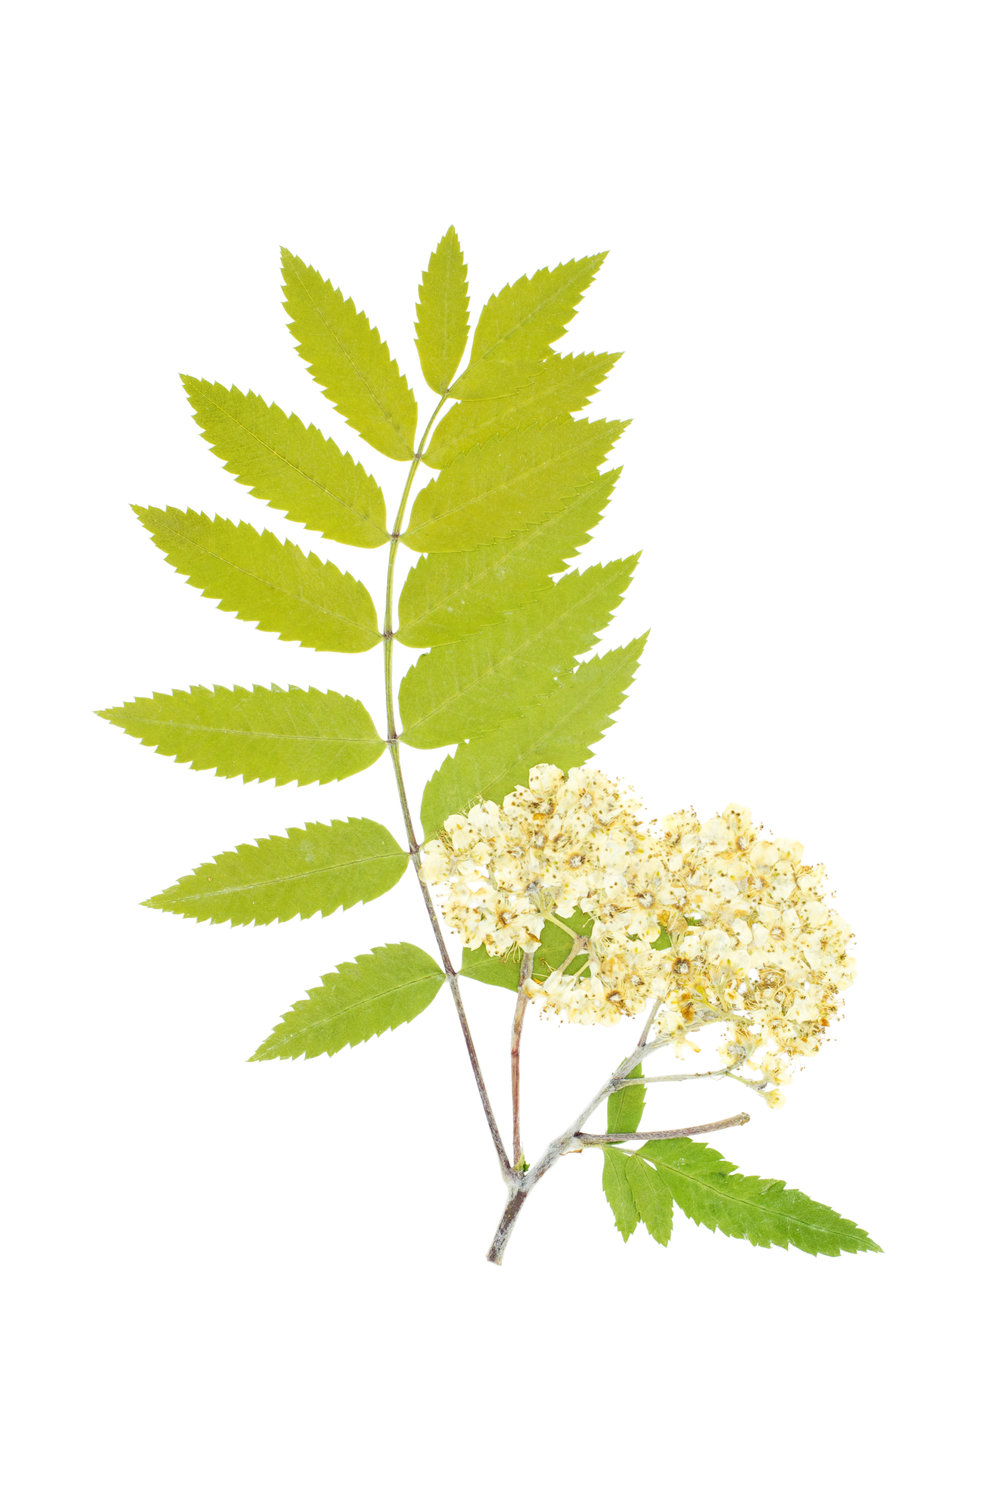 Sorbus aucuparia / Mountain Ash or Rowan